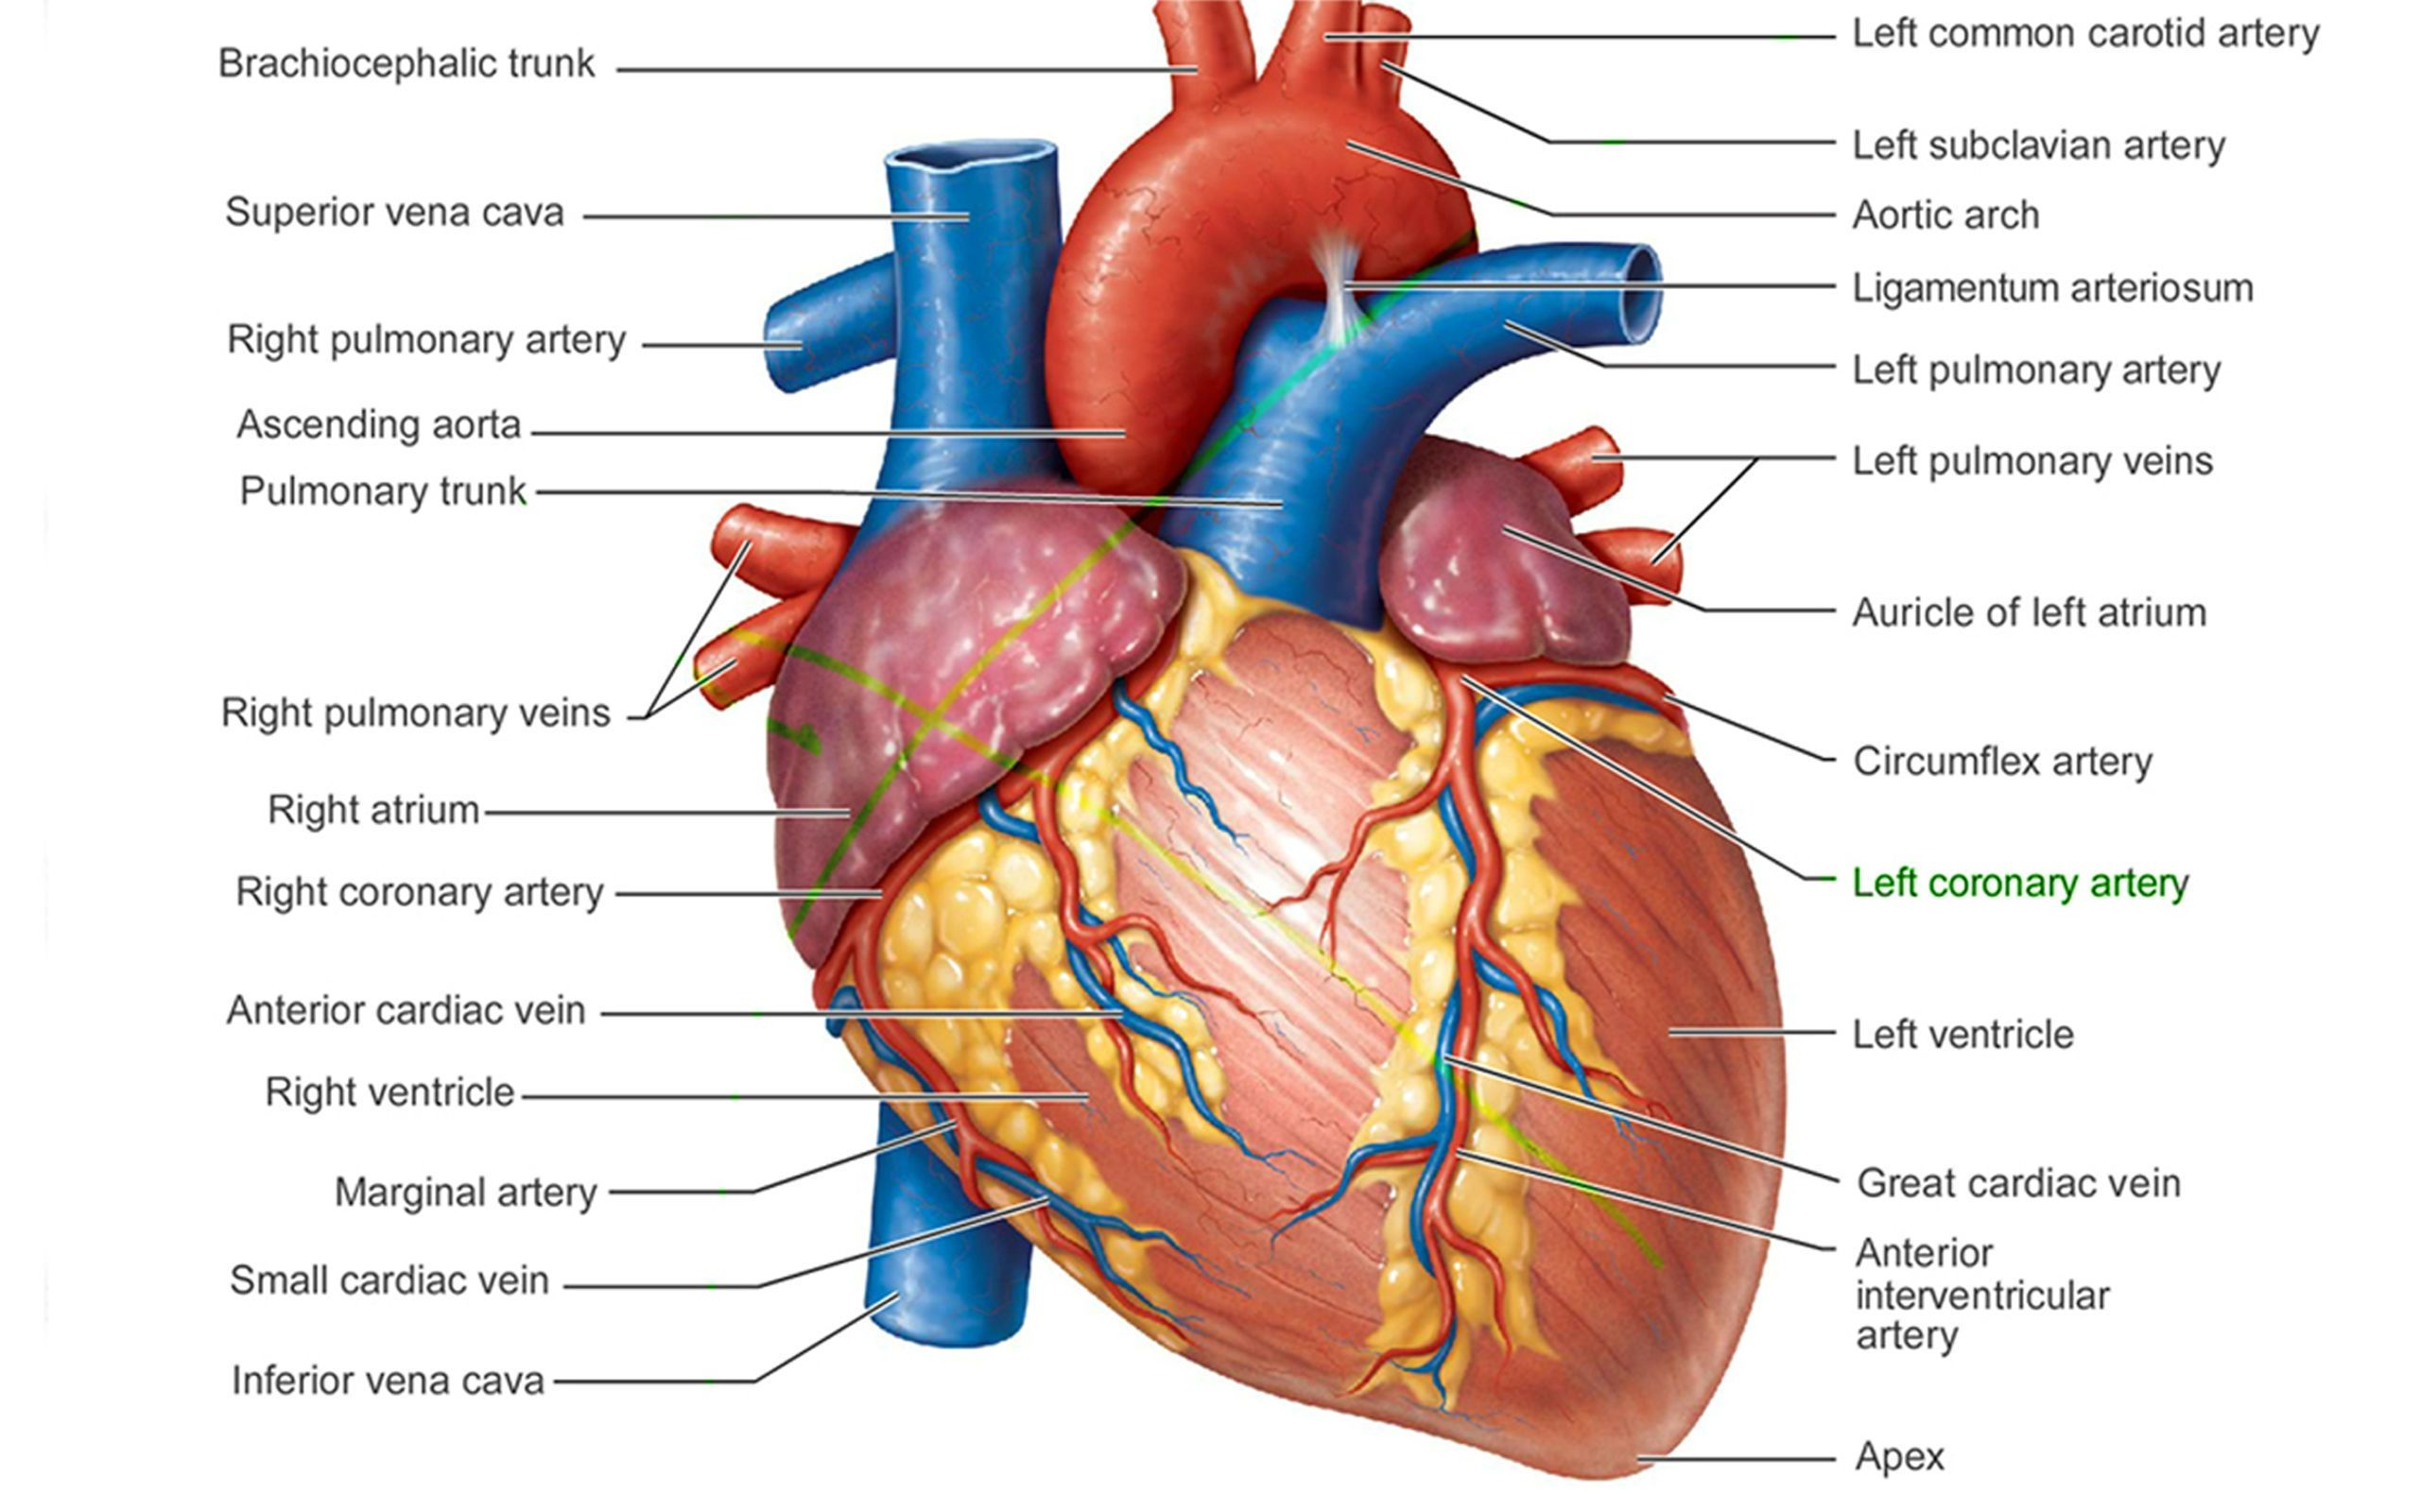 Pictures Of Human Heart Anatomy Anatomy Of The Human Heart 4k Ultra ...